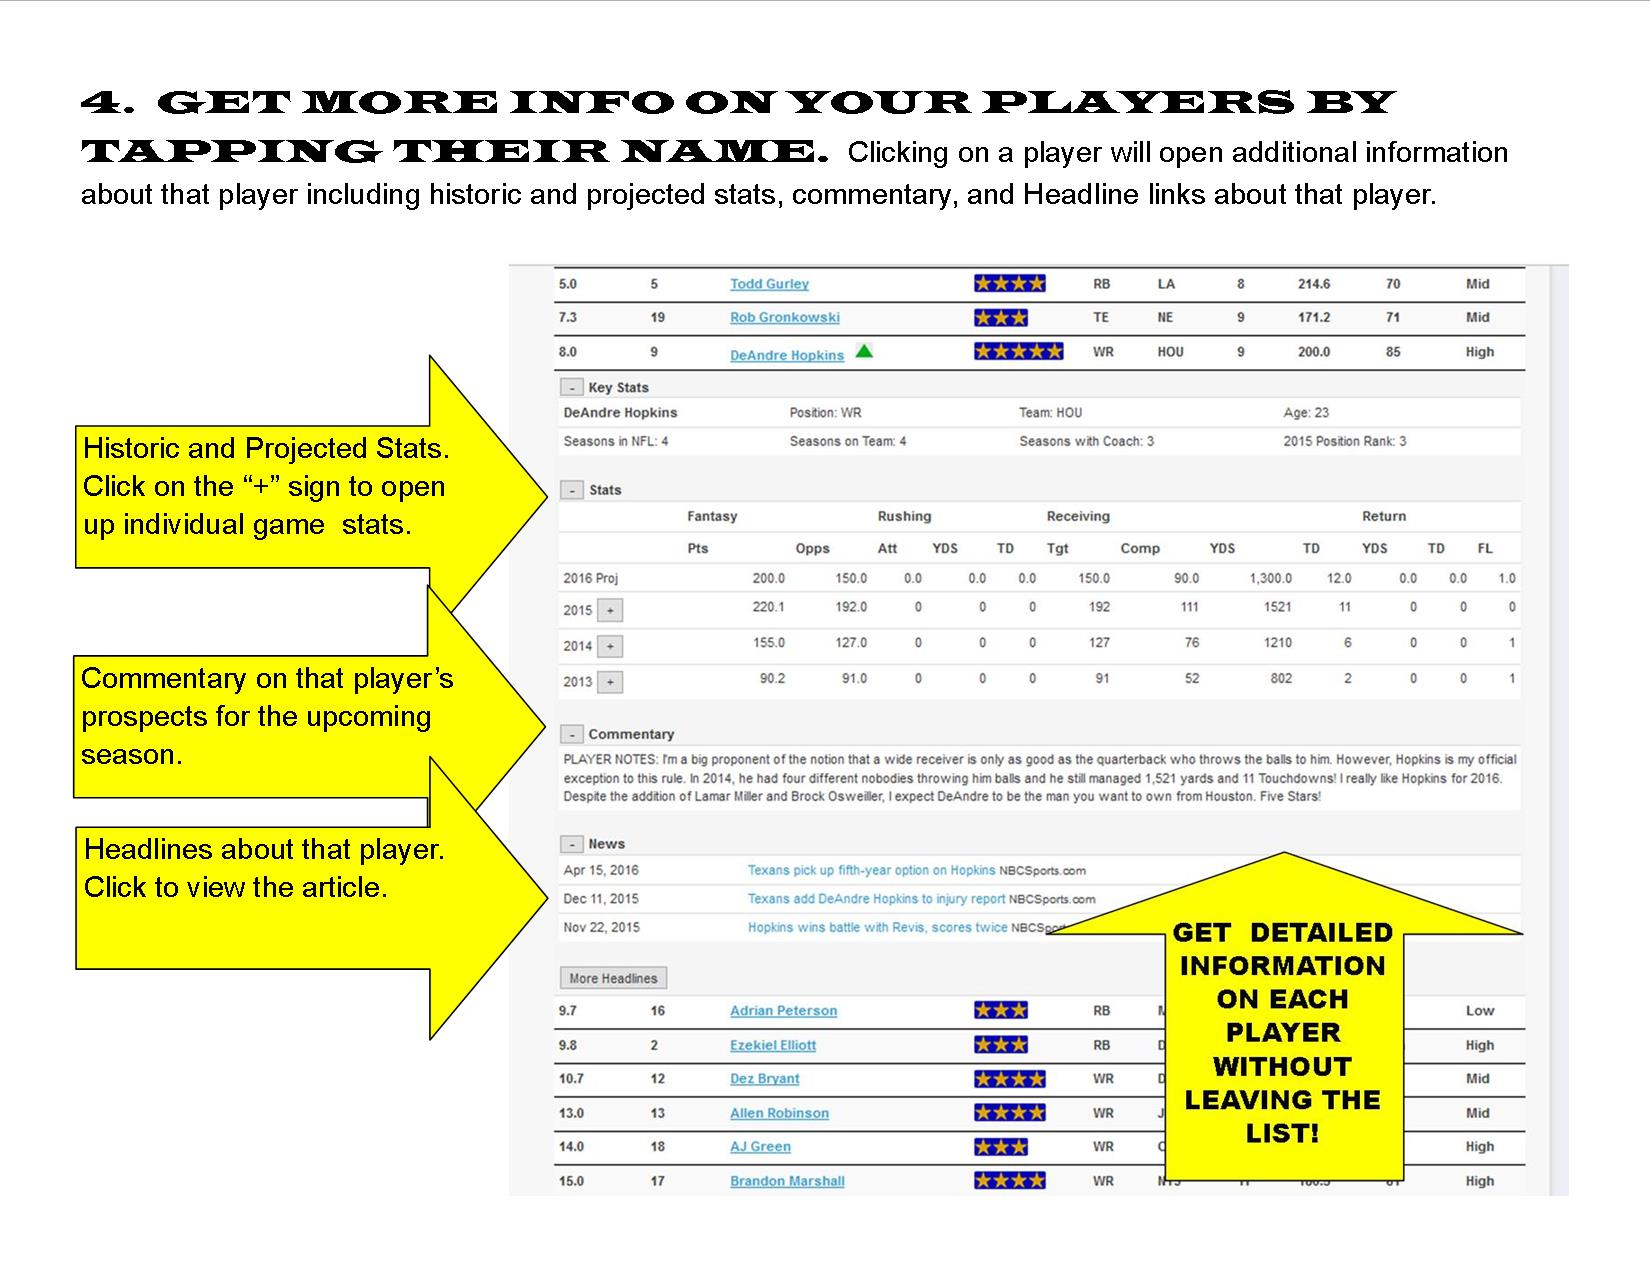 Get more information on a player by tapping on their name